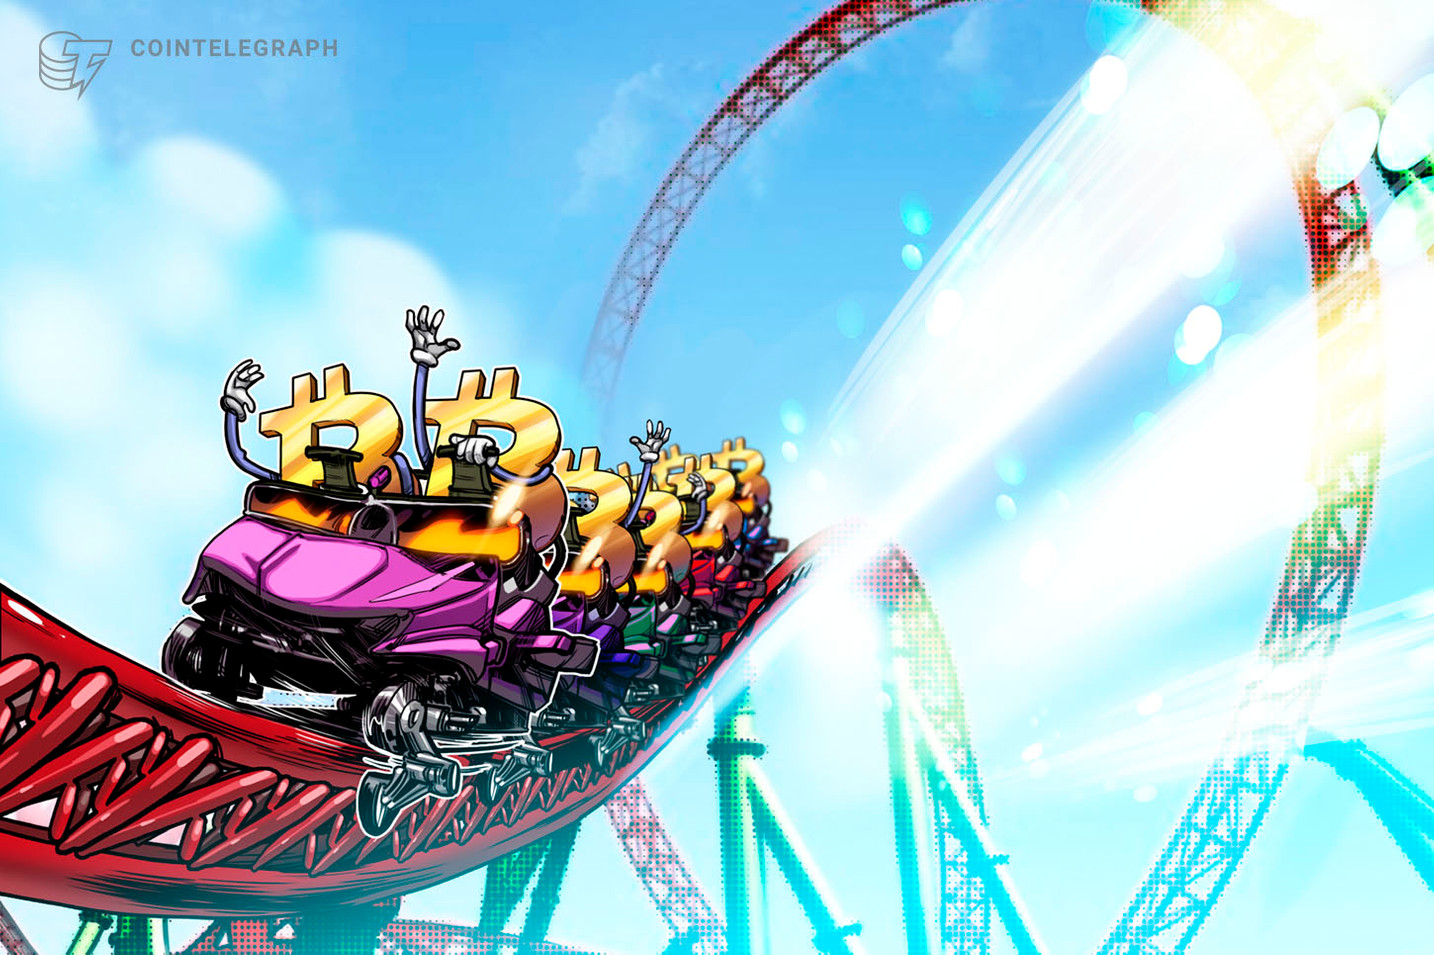 Bitcoin price drops to $22.4K after weekend all-time highs